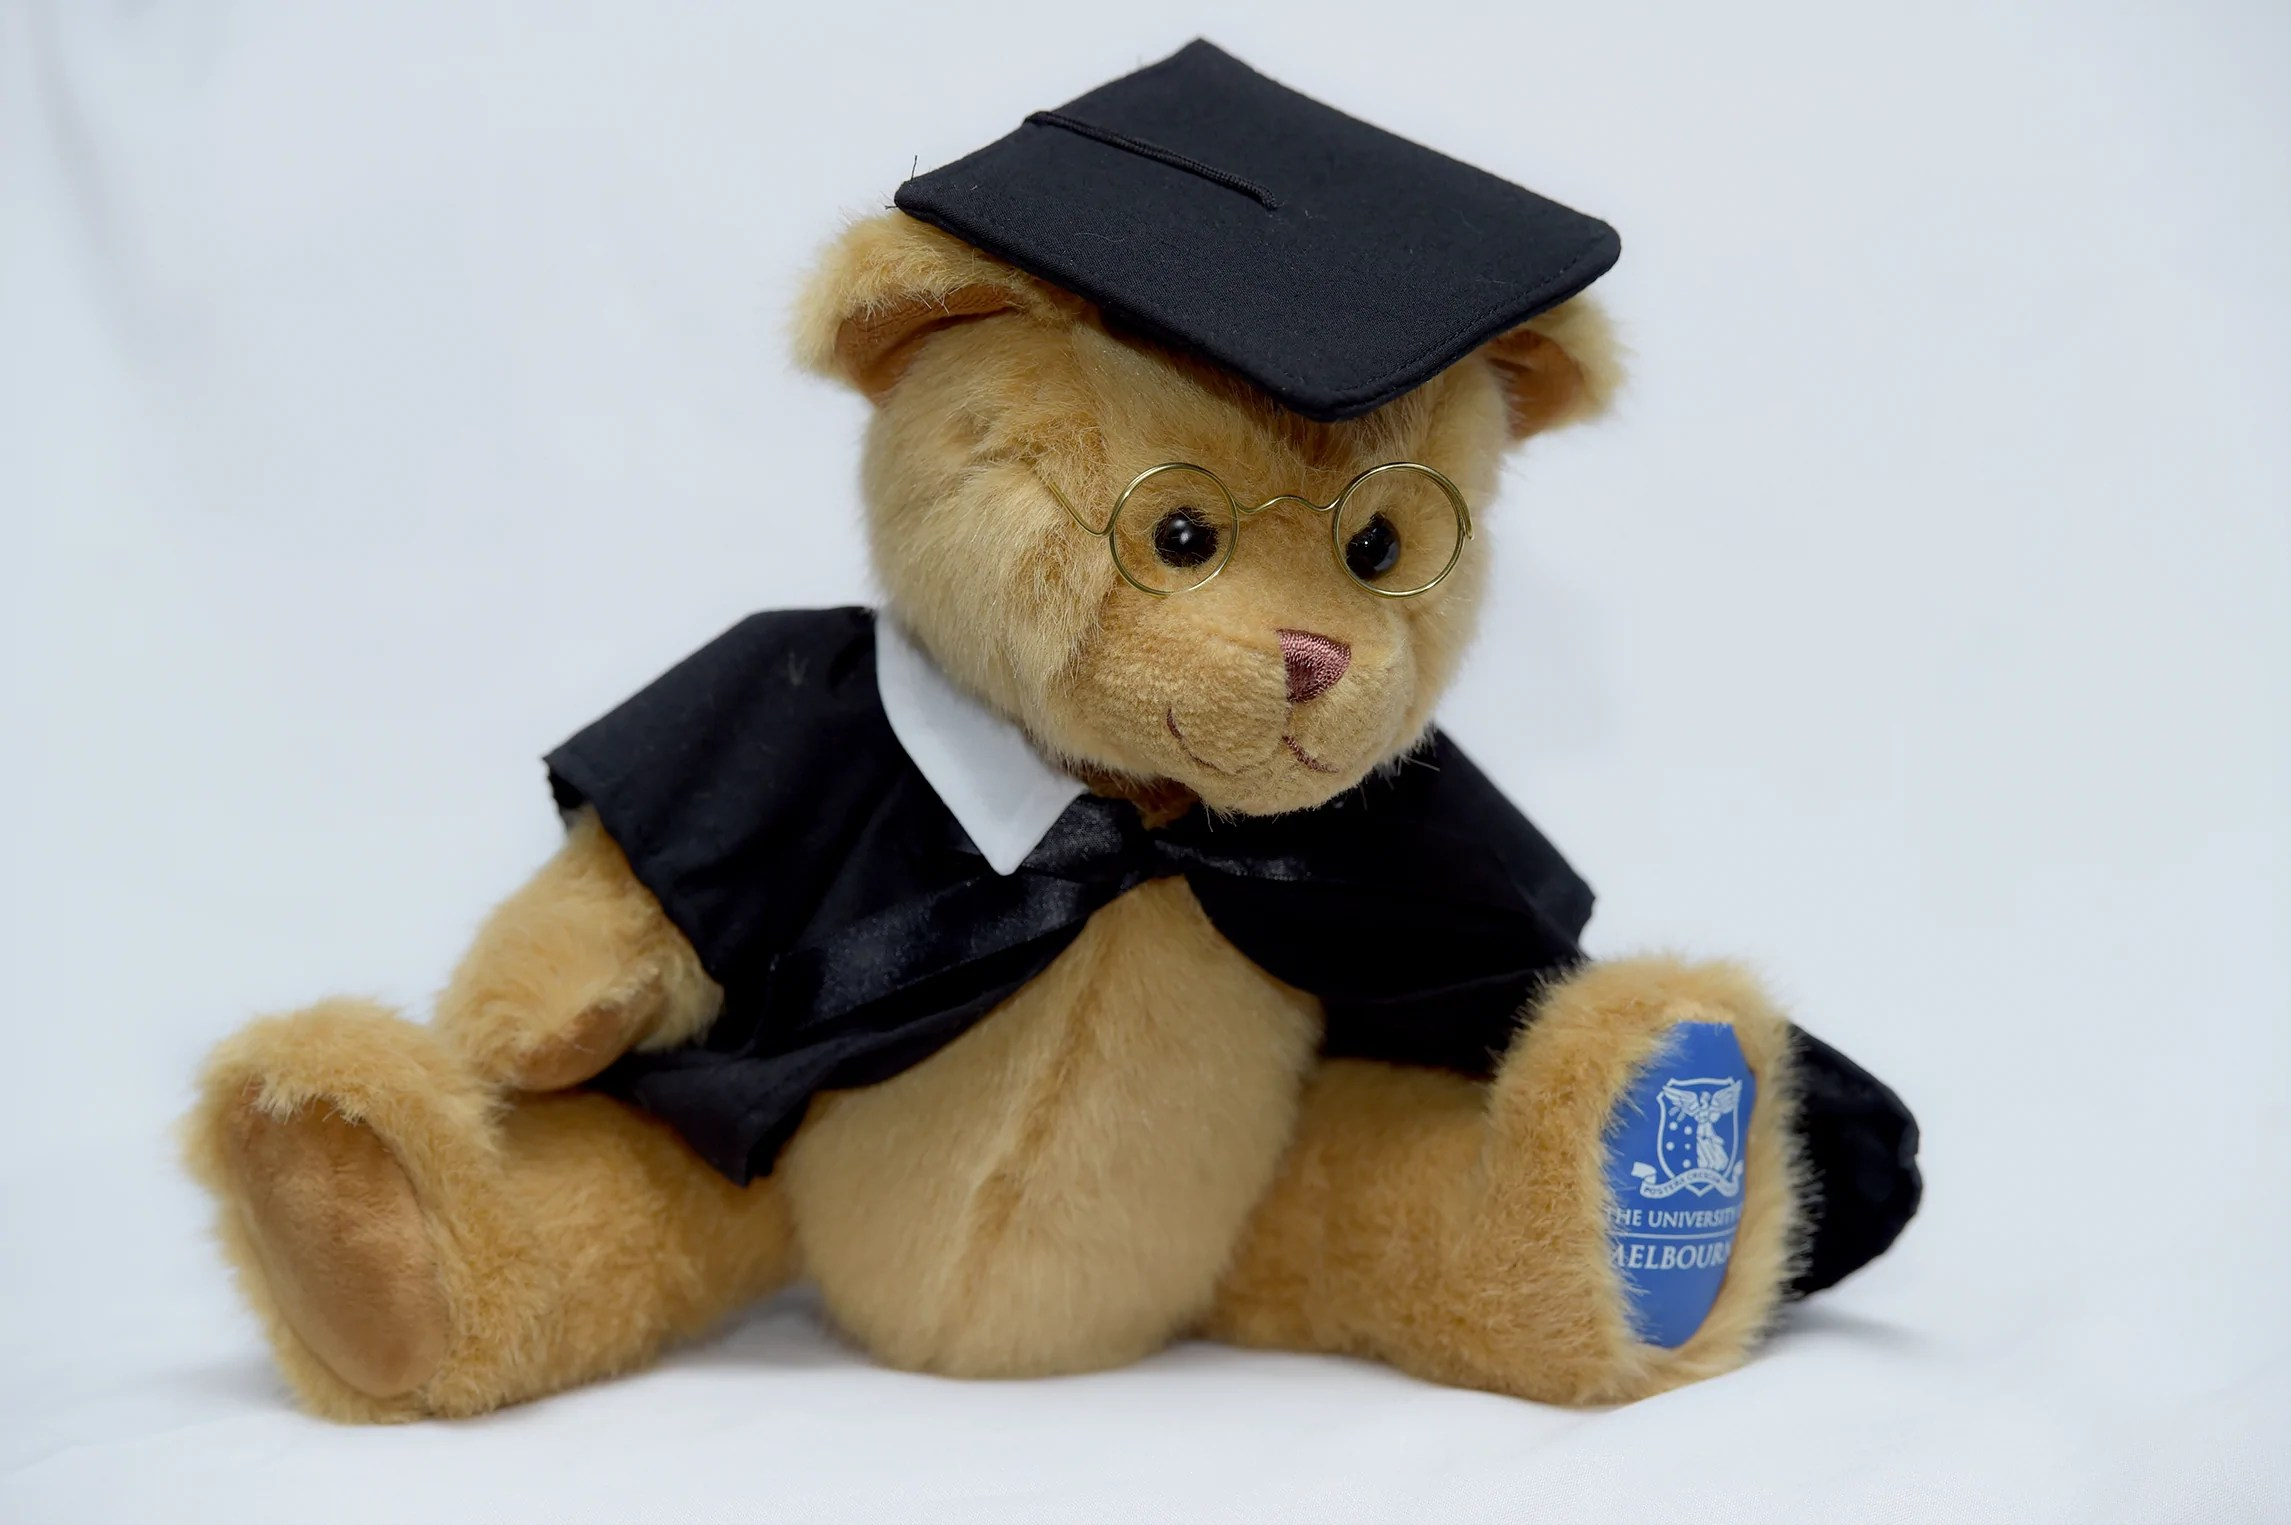 Graduation Invitation Unimelb Graduation Bear Soft Toy: Shop Melbourne University